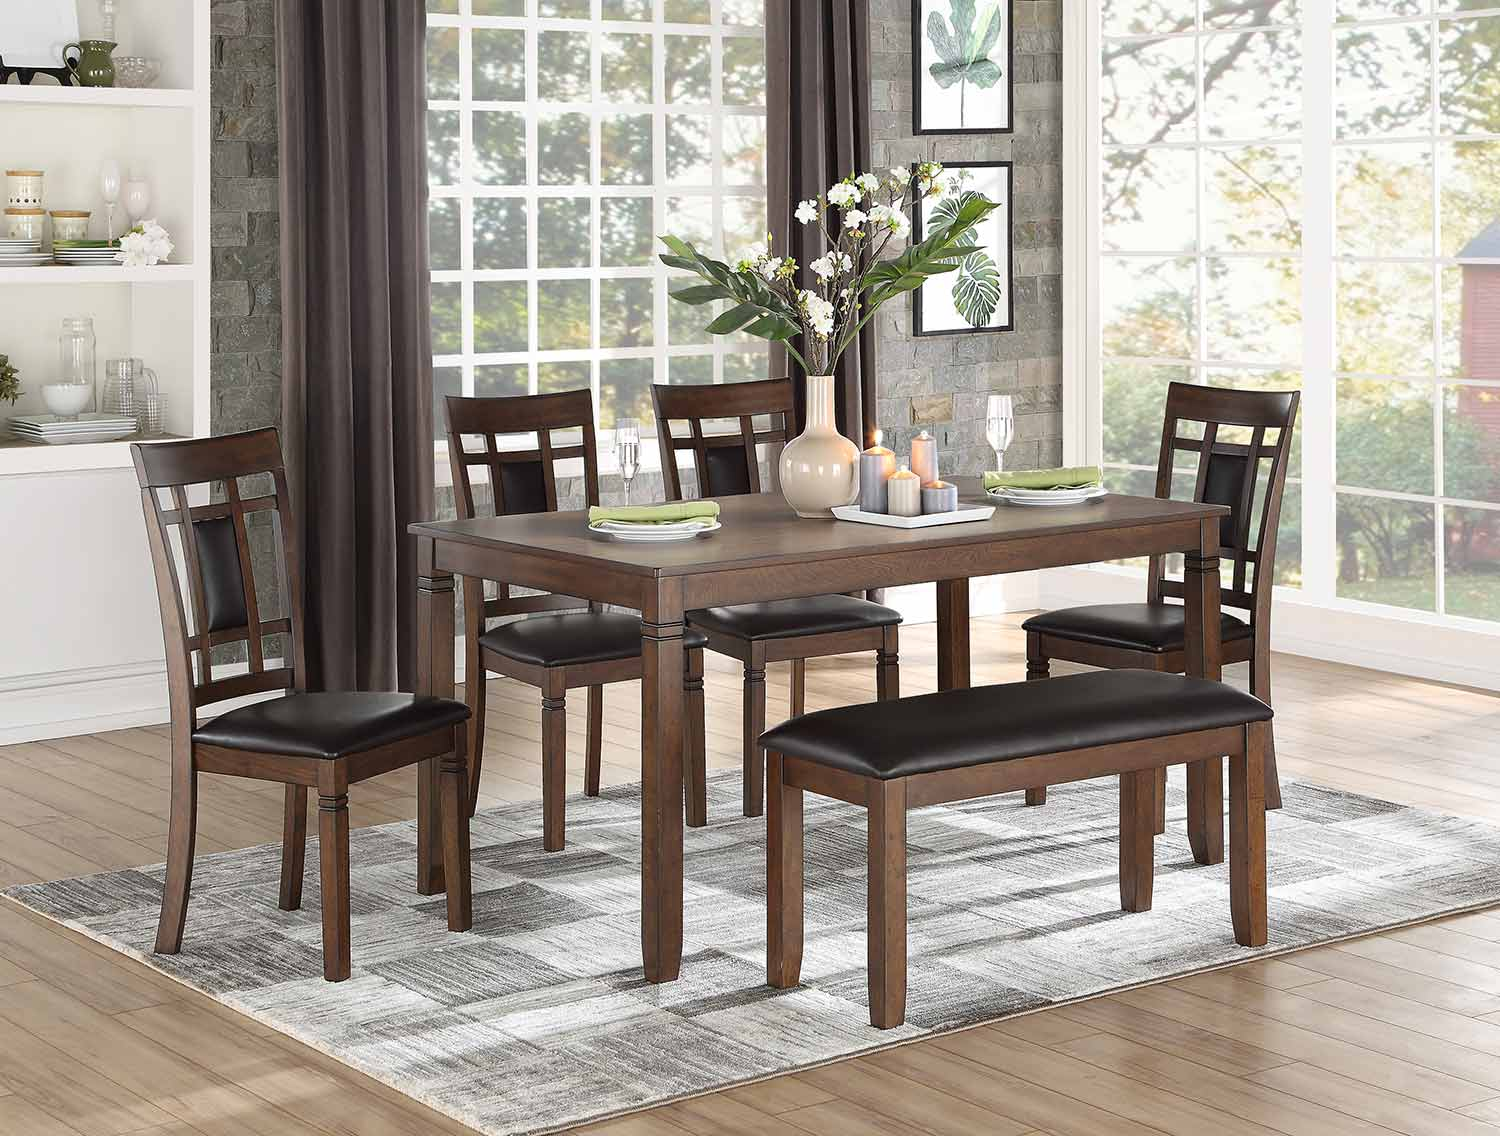 Homelegance Salton 6-Piece Pack Dinette Set - Bench: 38.5 x 15.5 x 19H